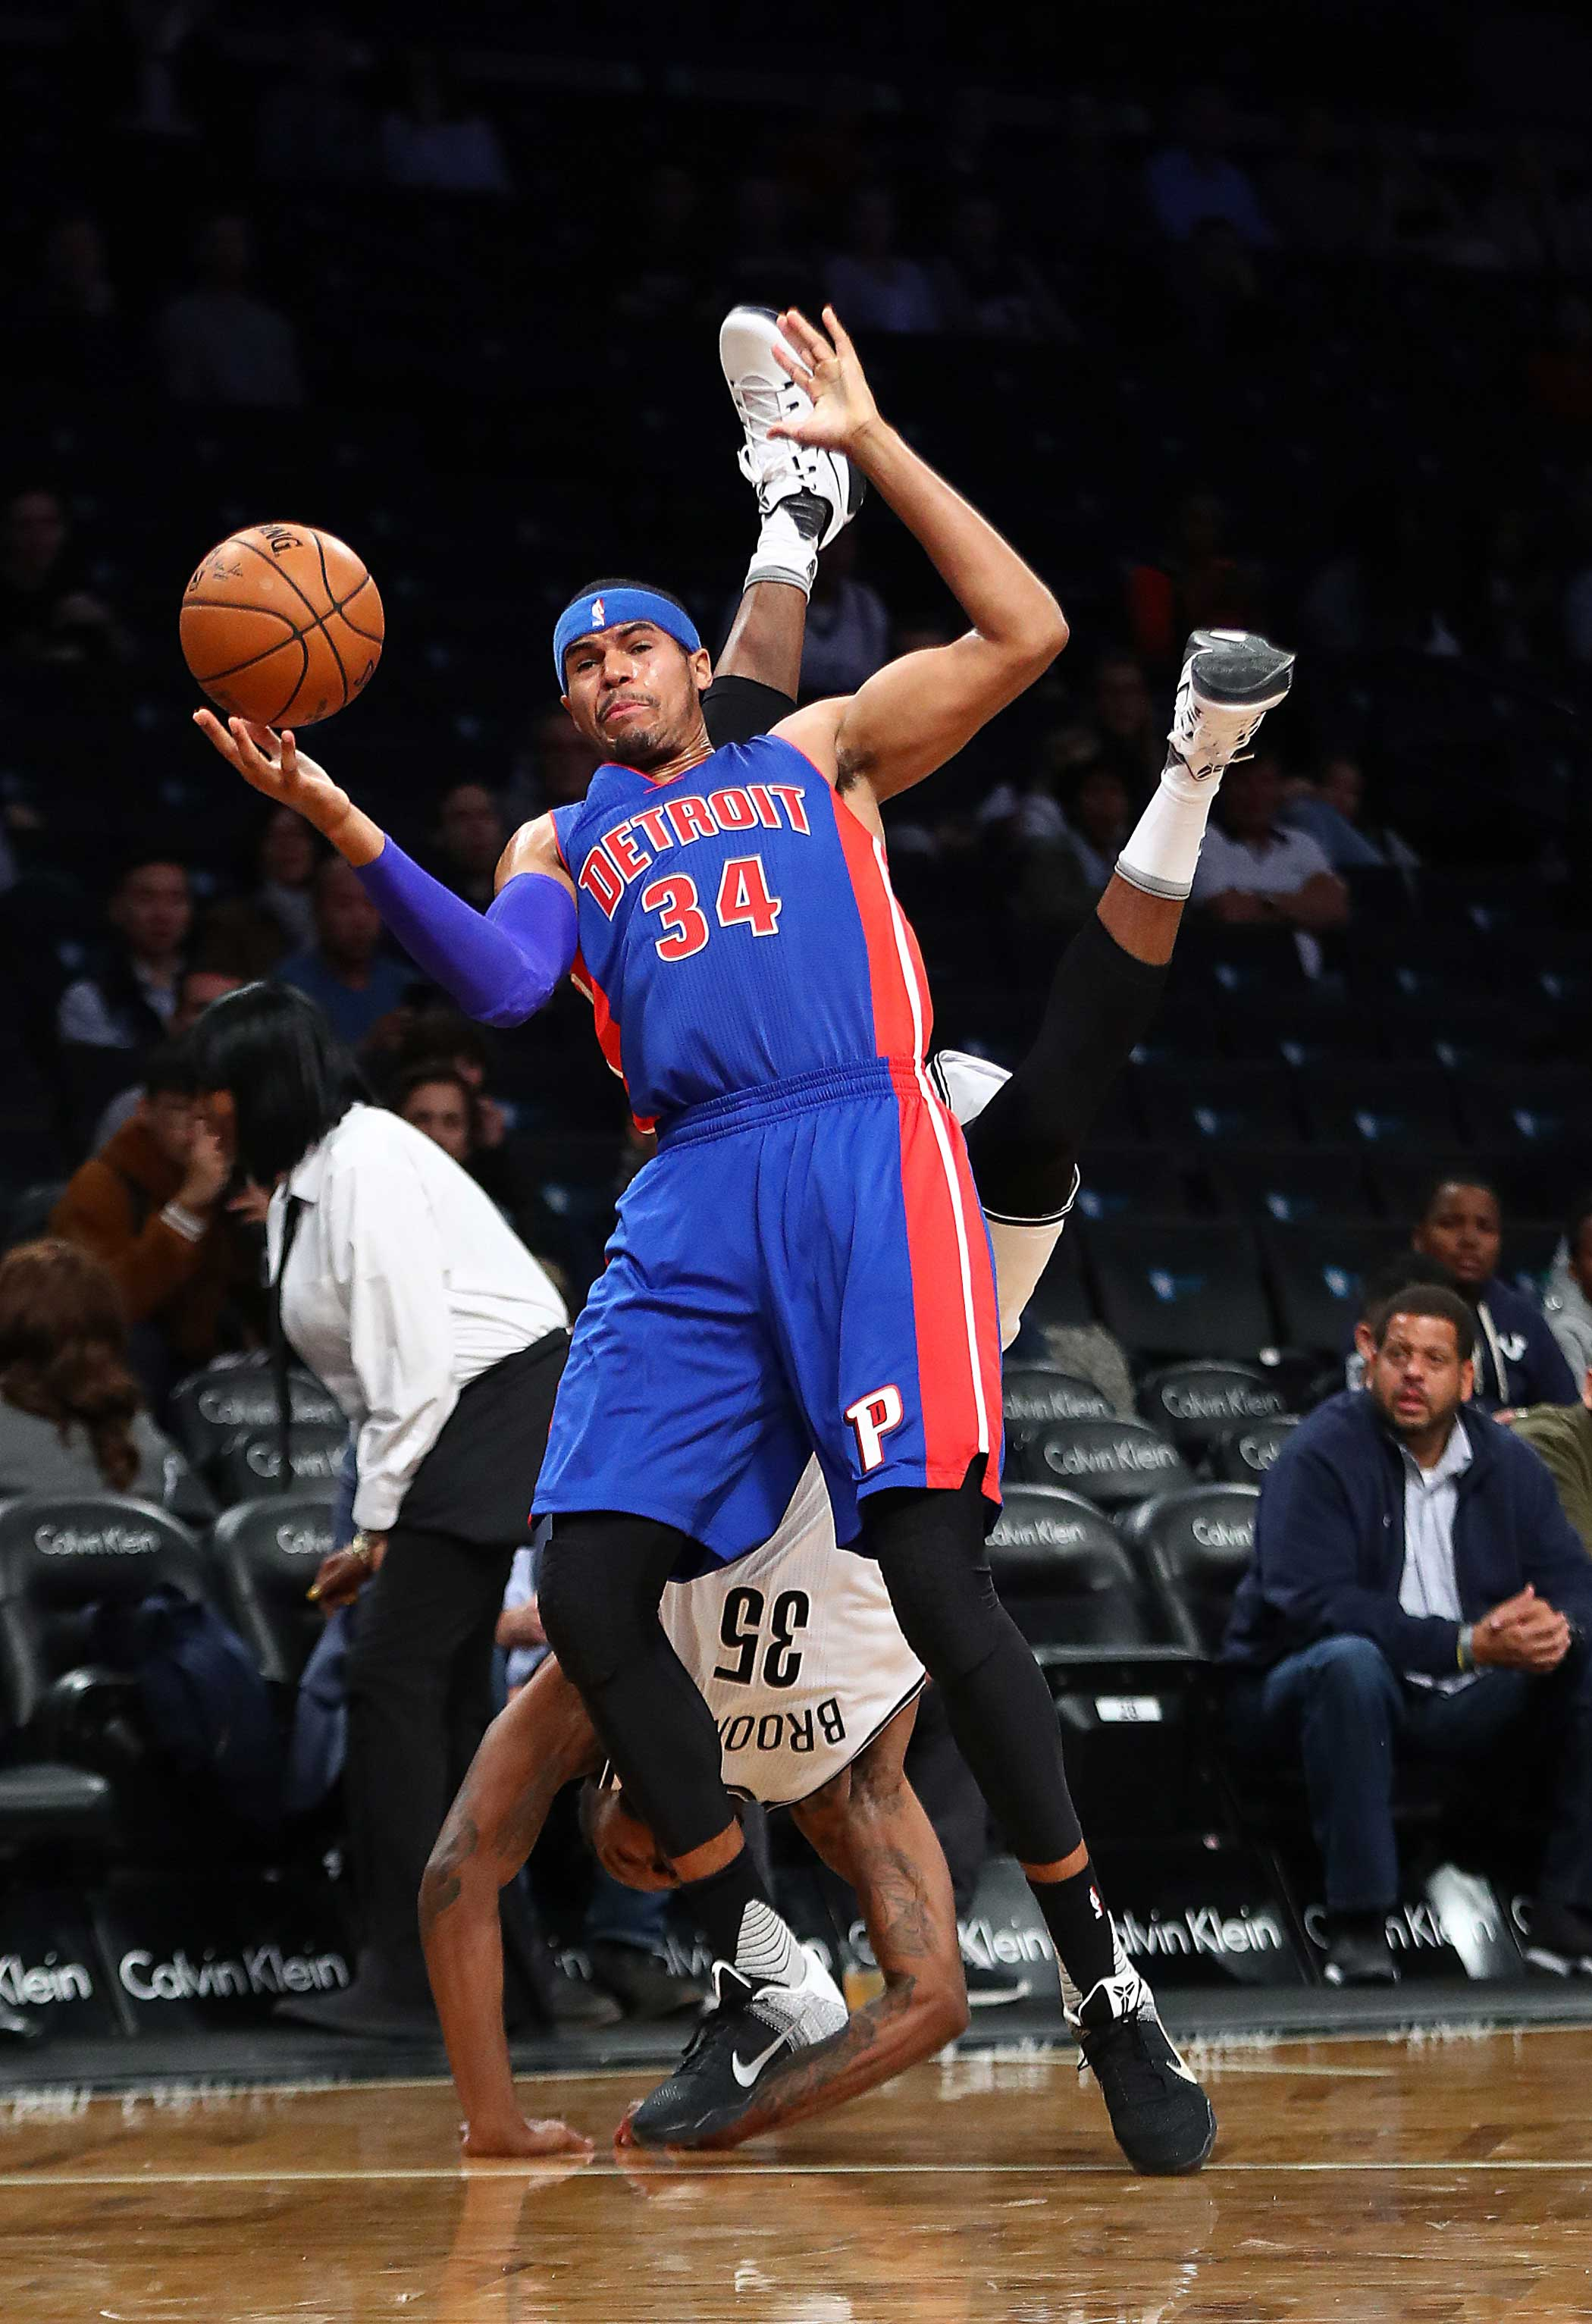 Tobias Harris of the Detroit Pistons and Trevor Booker of the Brooklyn Nets collide going for the ball during their Pre Season game at the Barclays Center on Oct. 6,